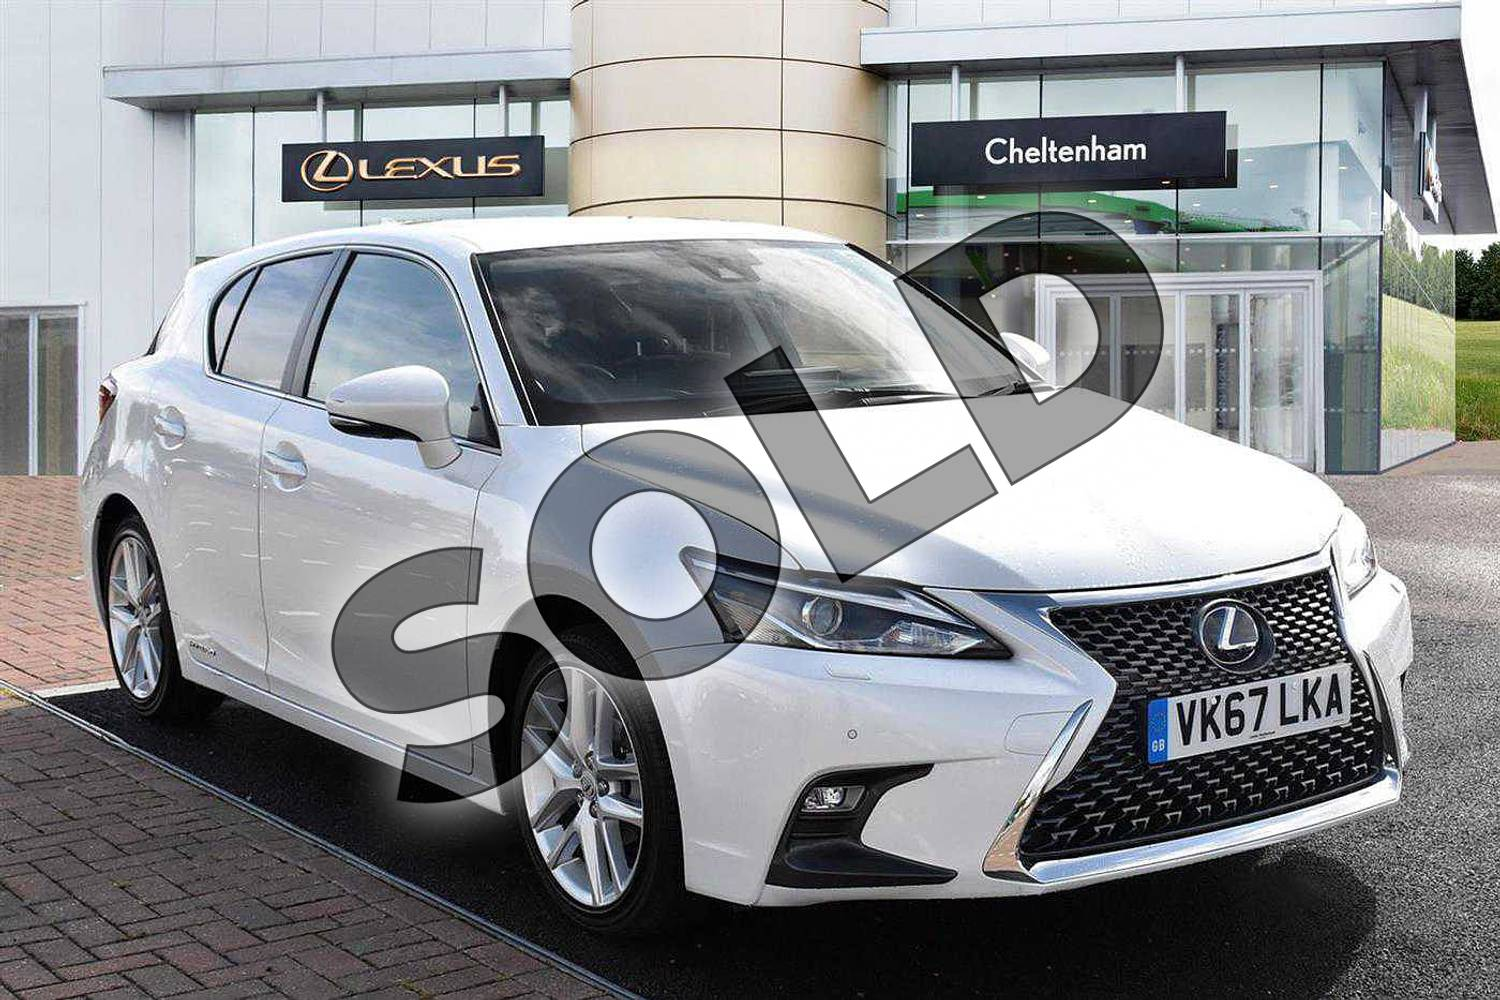 2017 Lexus CT Hatchback 200h 1.8 Premier 5dr CVT in Sonic White at Lexus Cheltenham